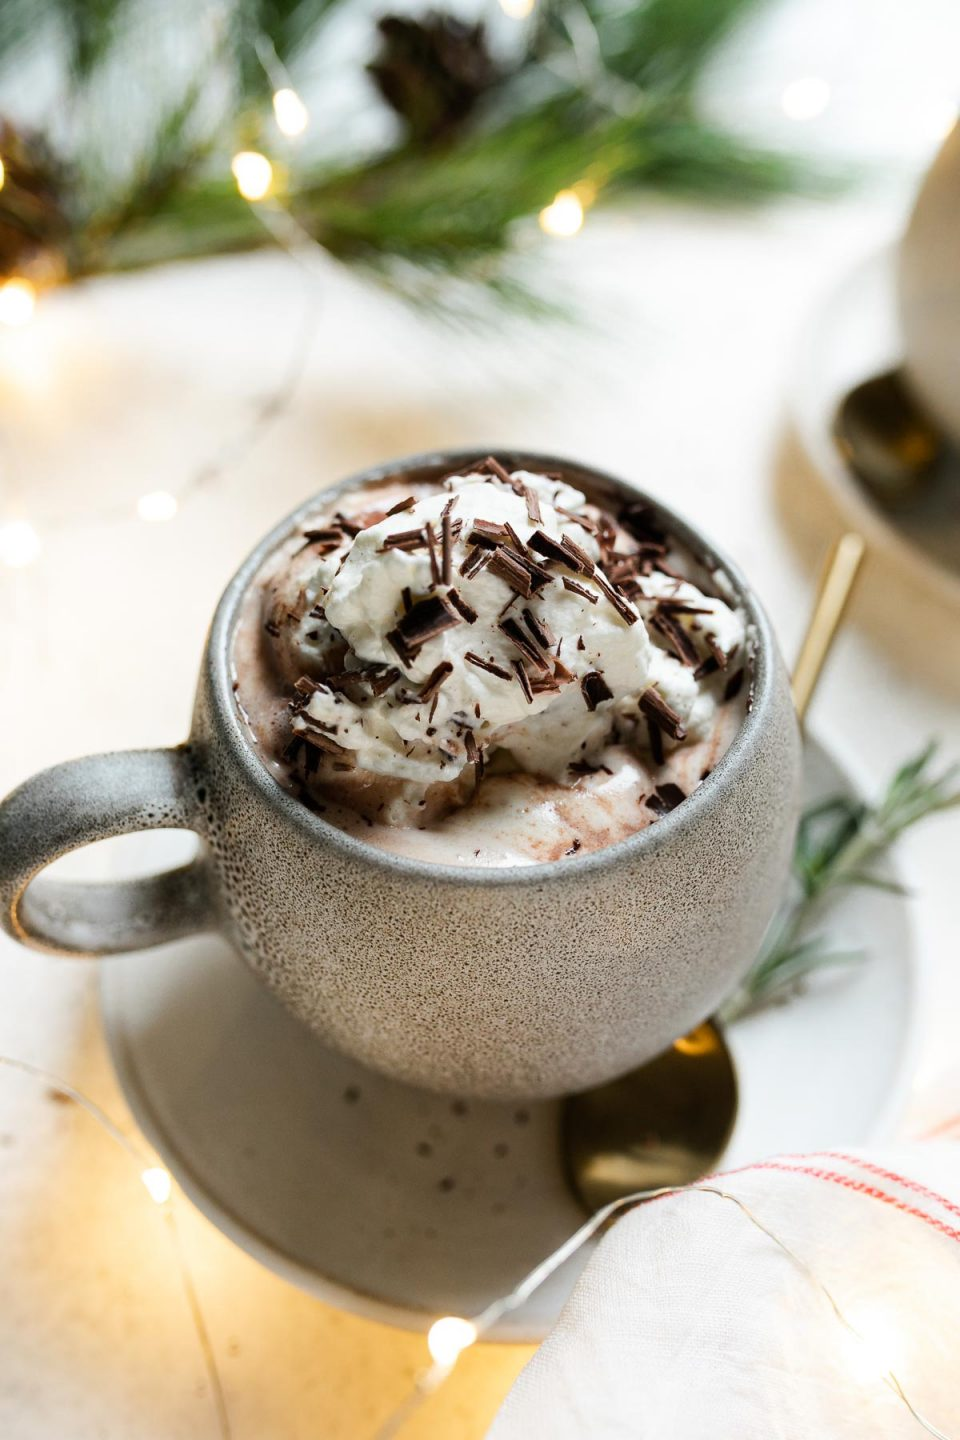 Christmas hot chocolate shown in a gray mug, which sit atop a white saucers. The cocoa is topped with freshly whipped cream & shaved chocolate. The saucer sit atop a white surface, next to a red & white striped linen napkin, twinkly lights, & decorative pine tree.